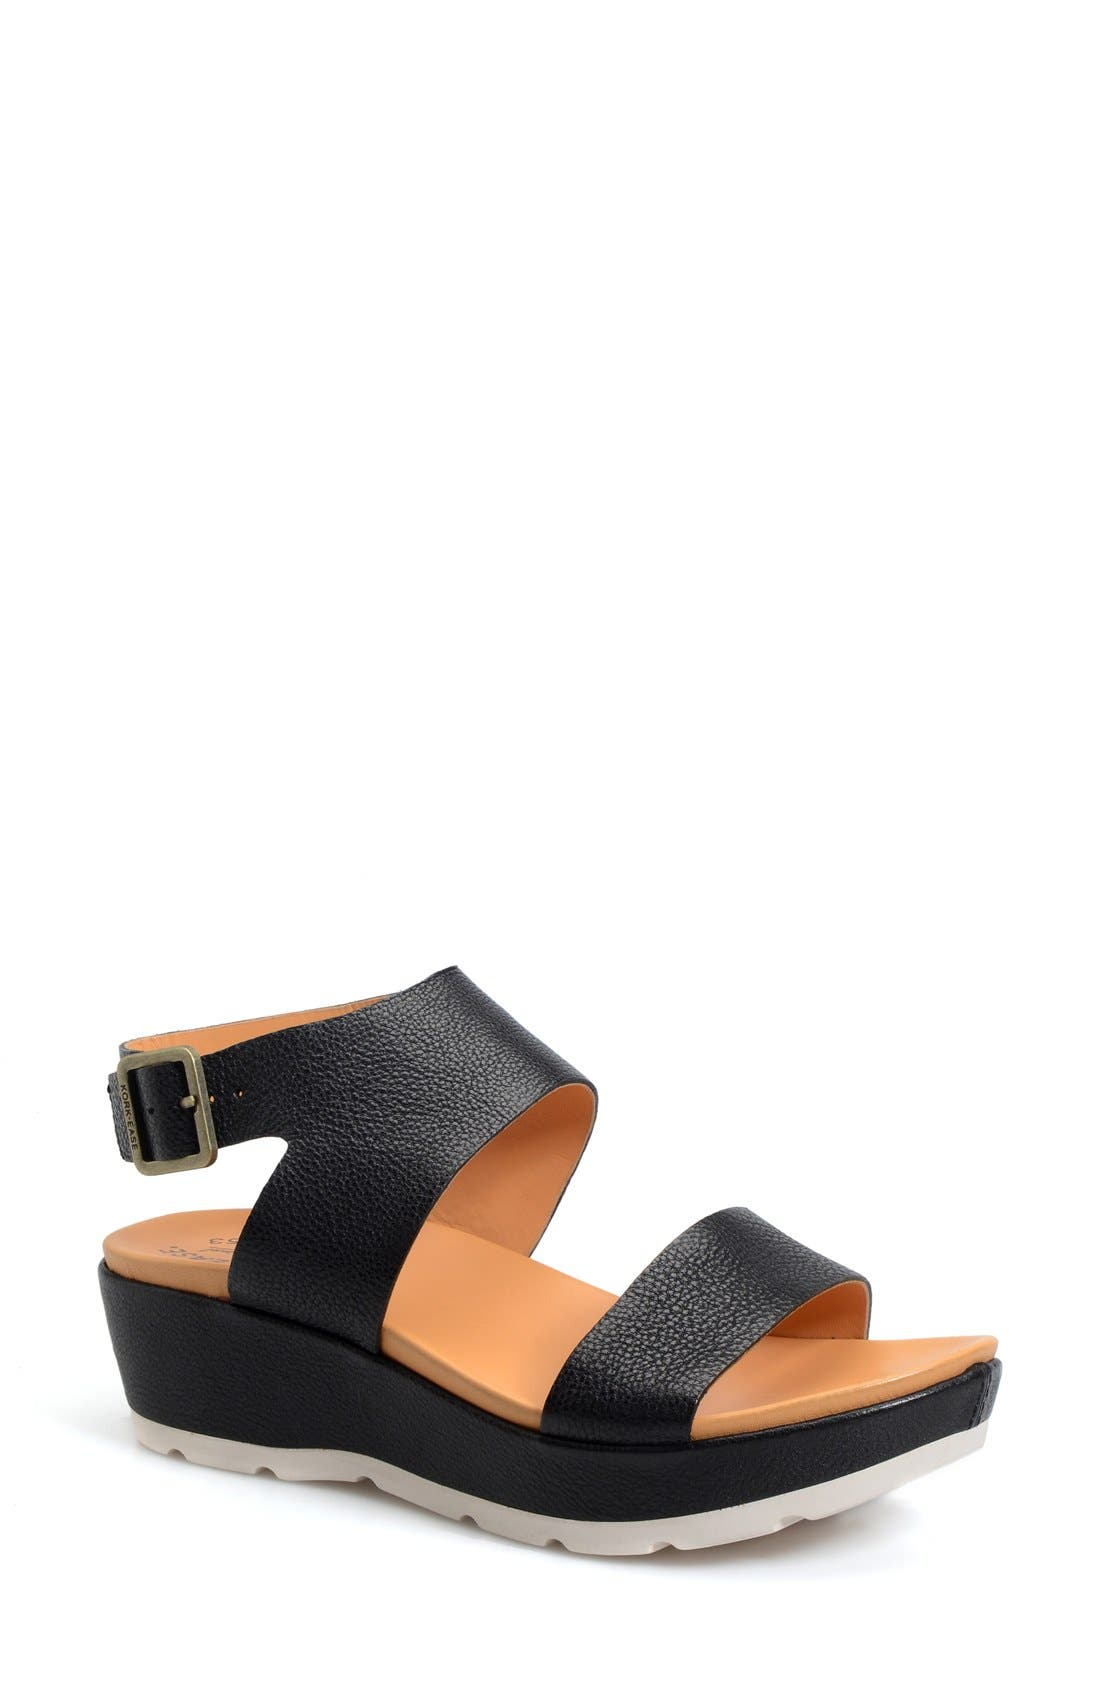 'Khloe' Platform Wedge Sandal,                         Main,                         color, 001